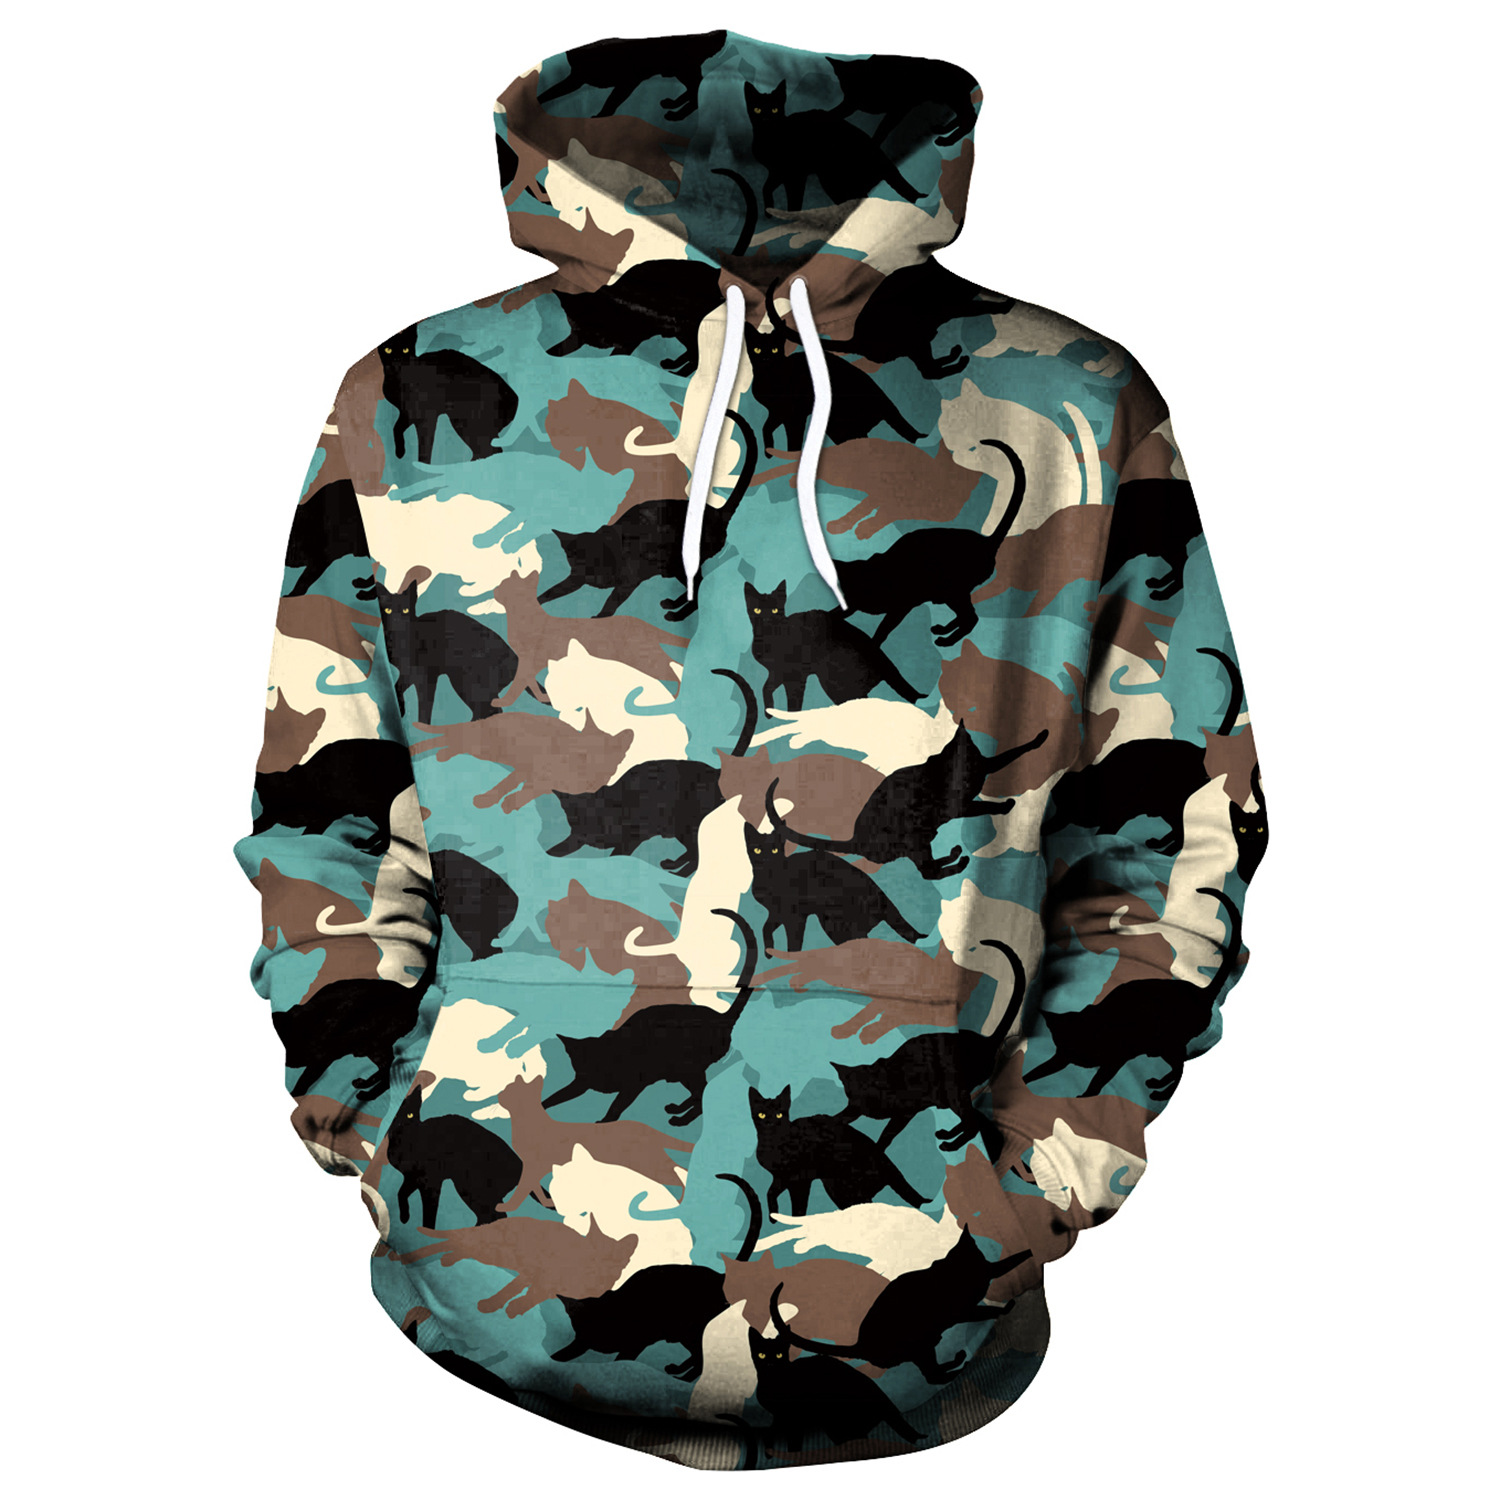 Hoodies Camouflage Cat Print Hoodies With Hat Women Hoodie Loose Sweatshirt Pullover Sudaderas Mujer Moletom